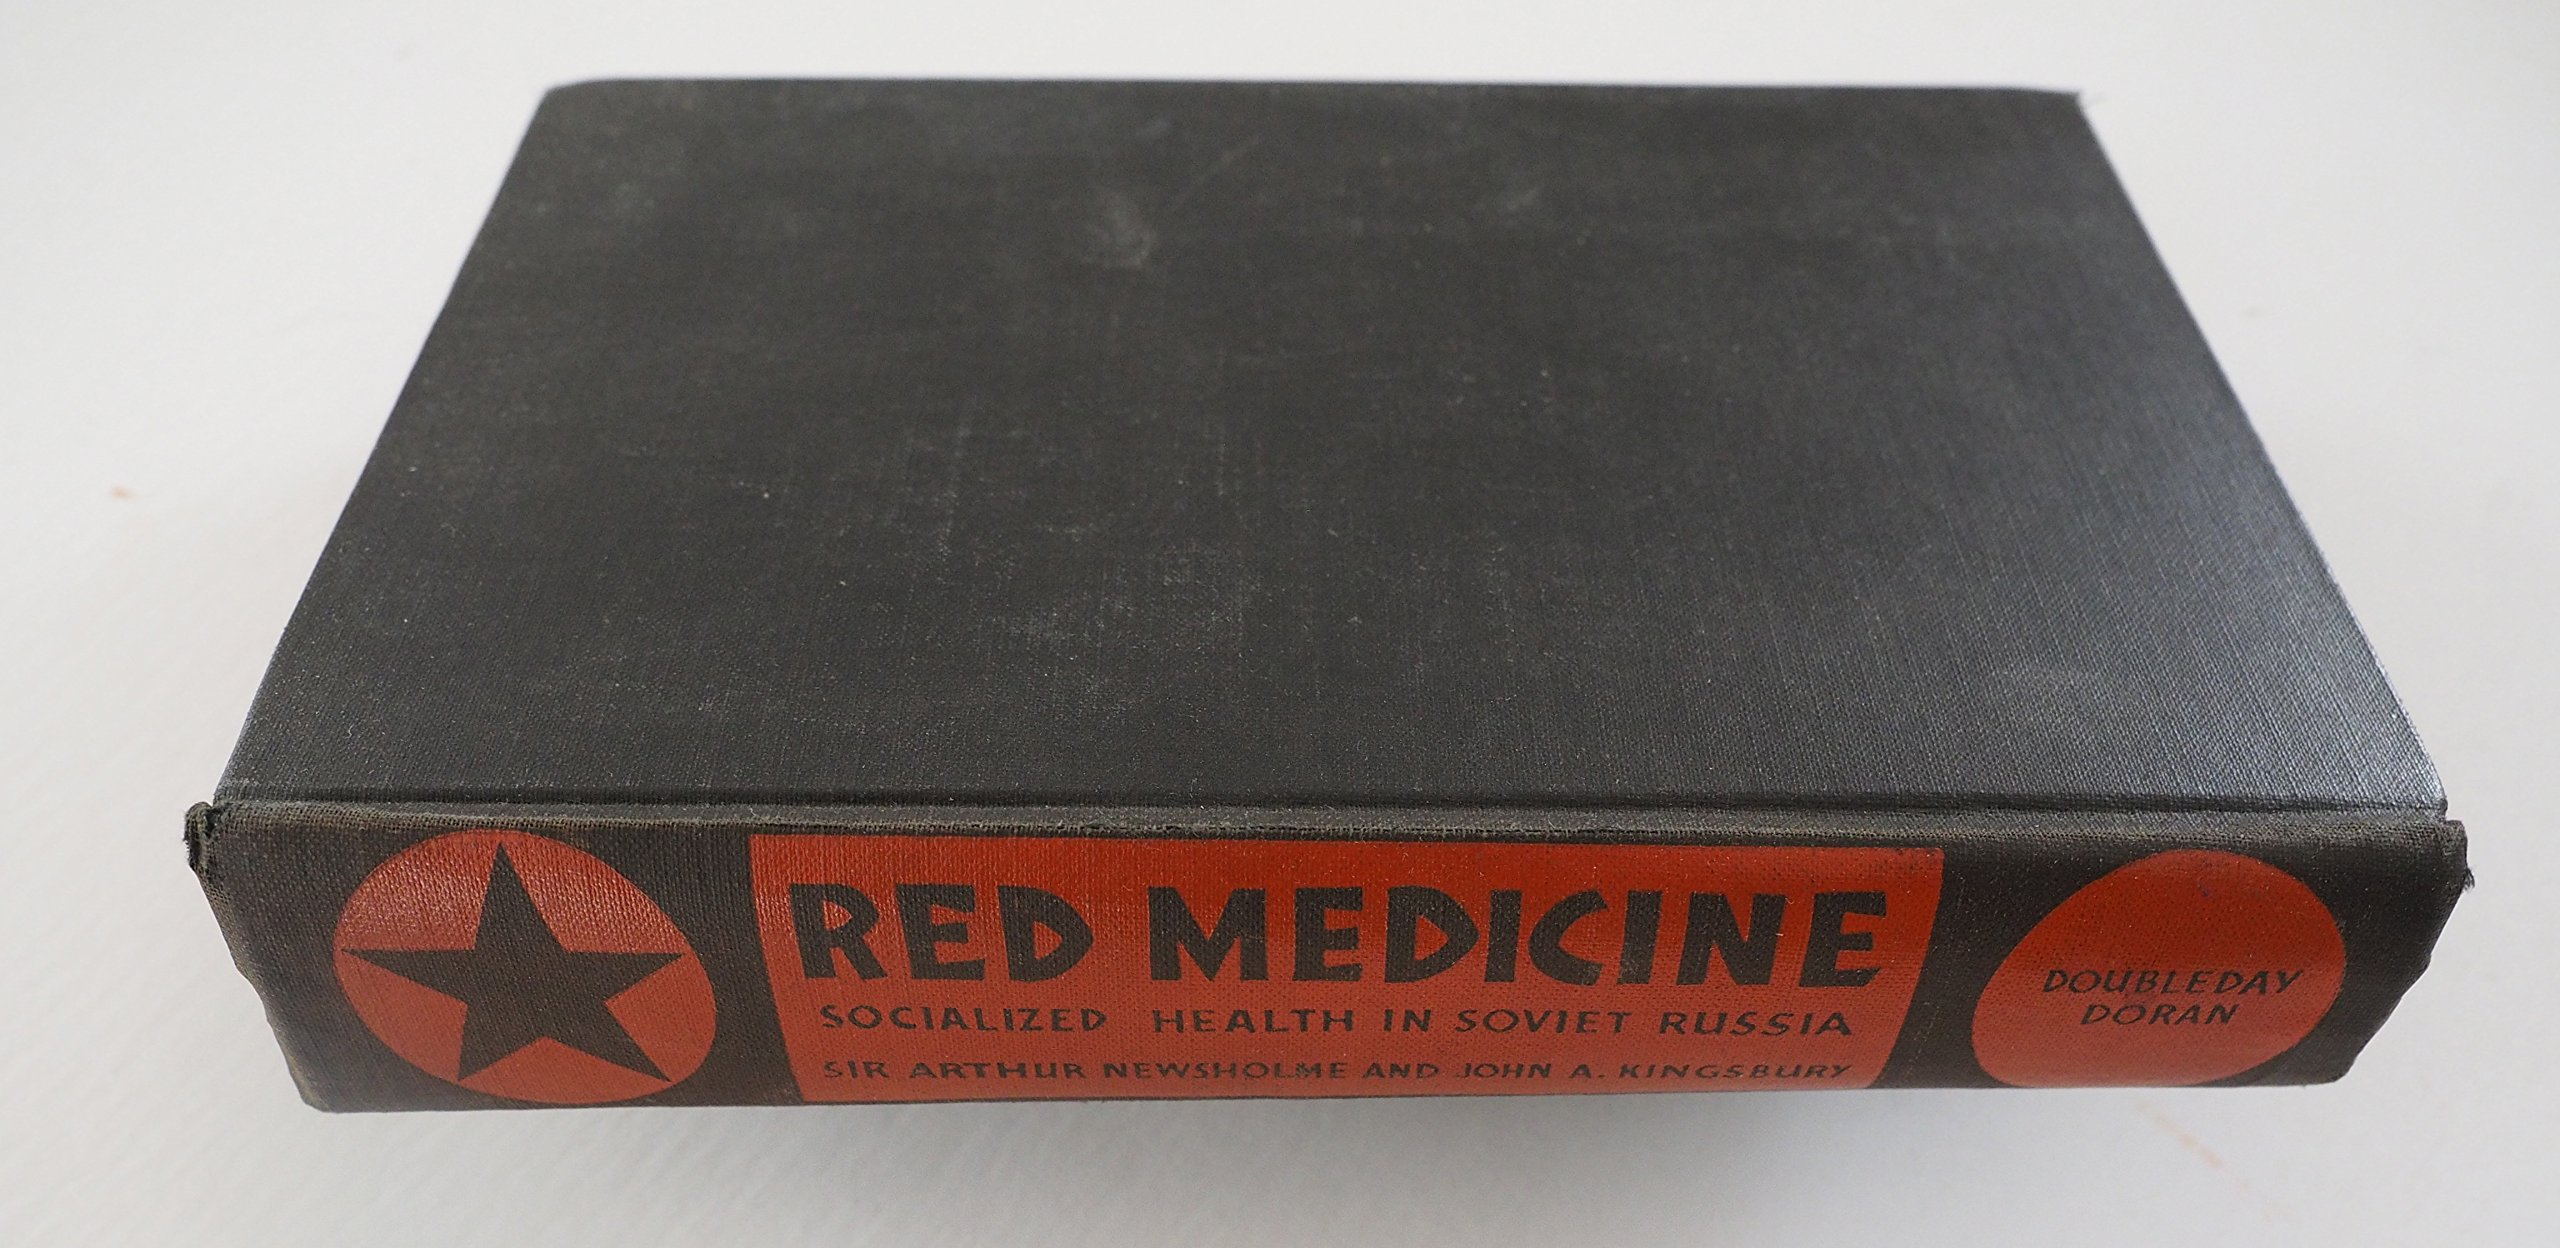 Red Medicine. Socialized Health in Soviet Russia